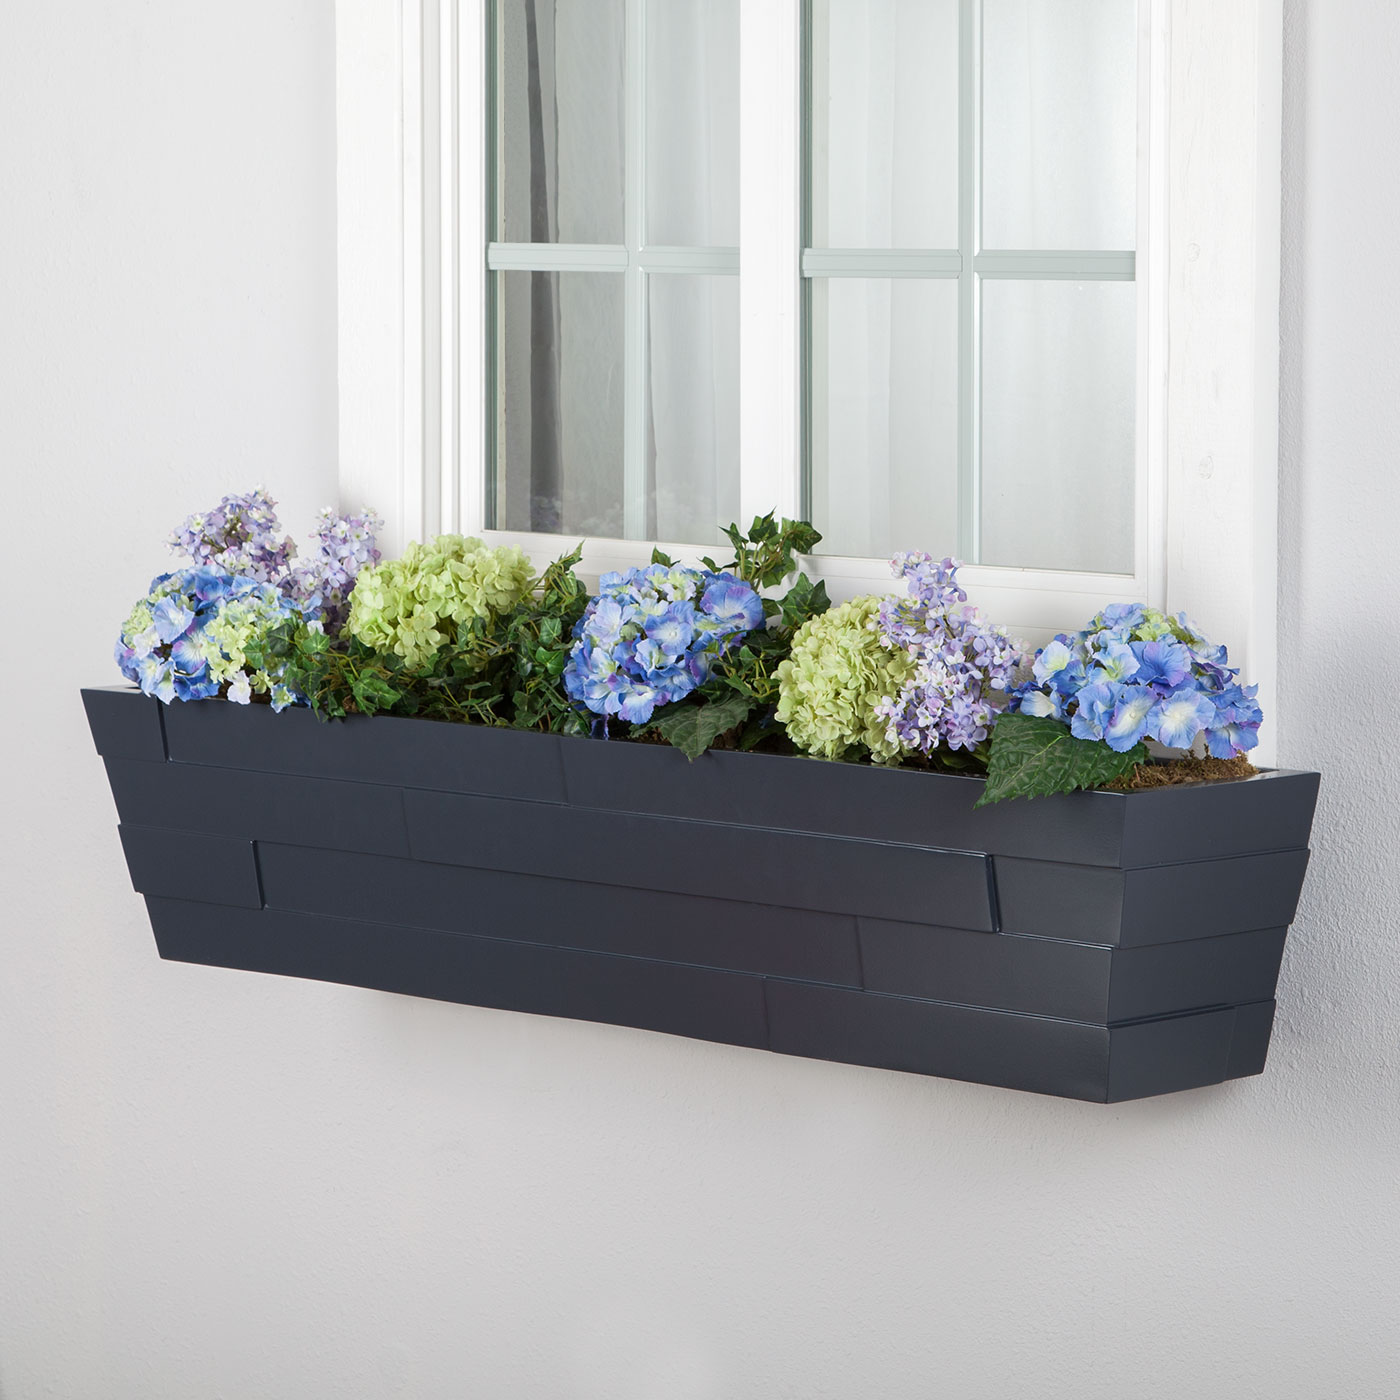 Window Planters: Sleek Tapered Window Planters & Reservoirs